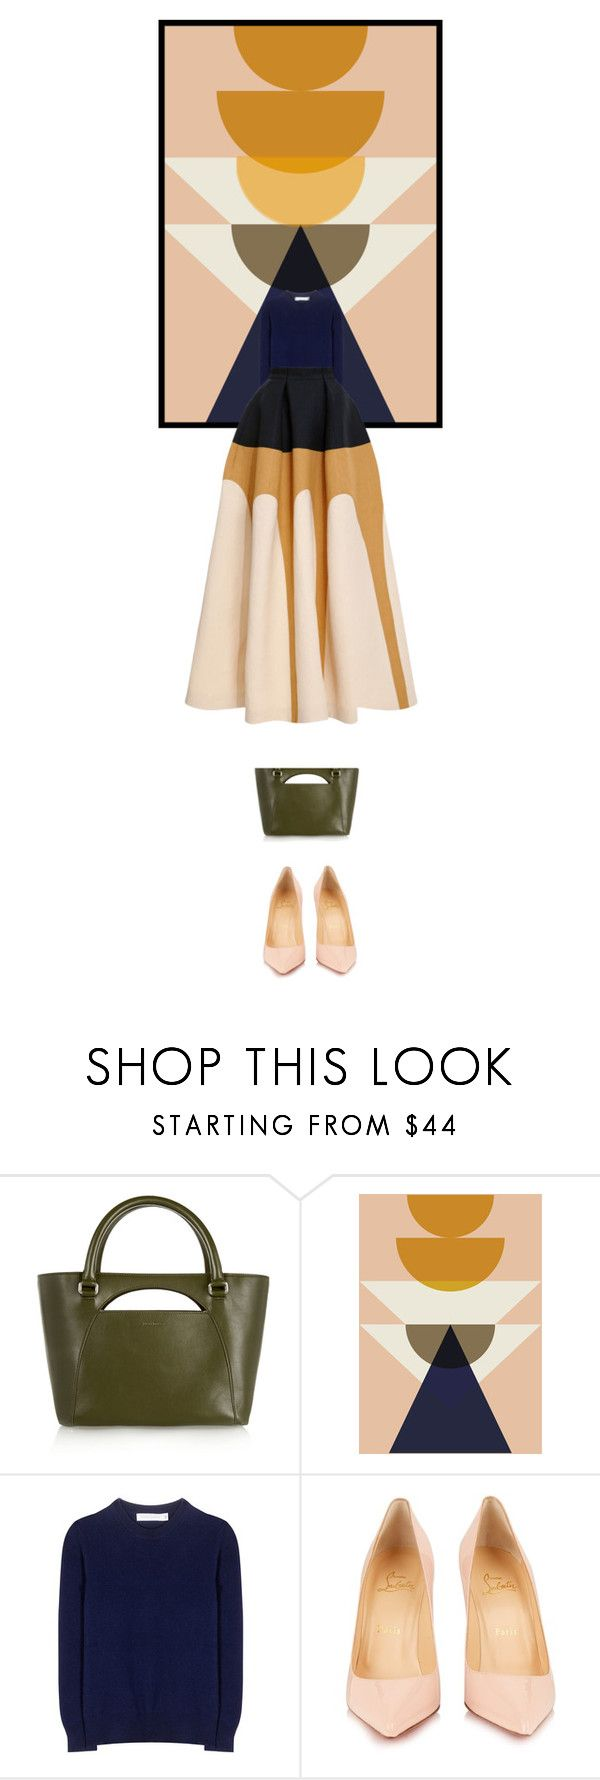 """""""Cascade"""" by mirary ❤ liked on Polyvore featuring J.W. Anderson, ferm LIVING, Victoria Beckham, Christian Louboutin and Delpozo"""